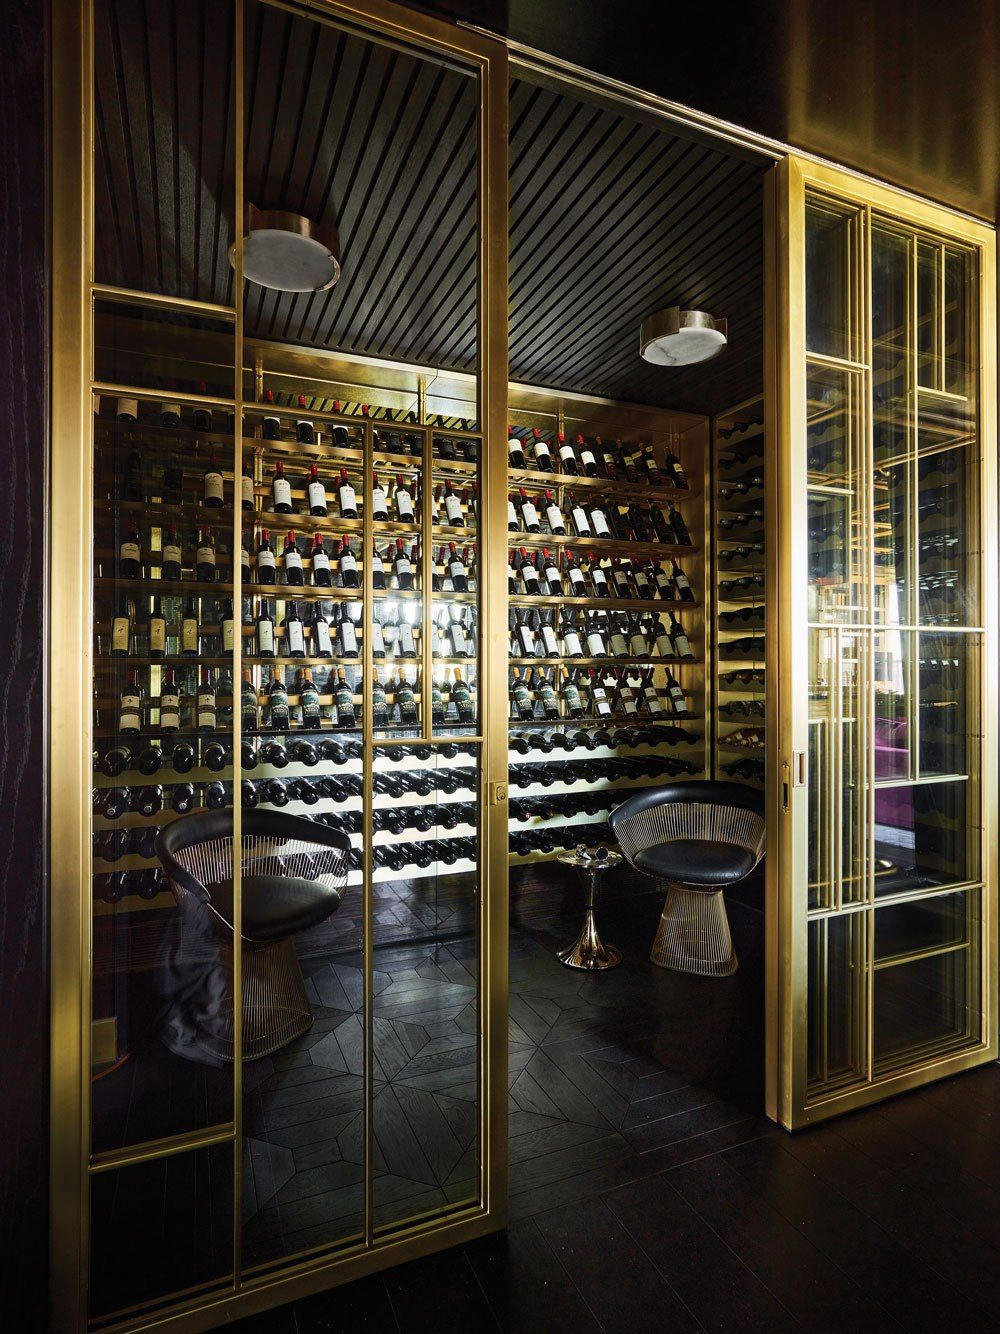 Unter bad theke speicher ideen custom wine cellar  pizzeria in   pinterest  interior design